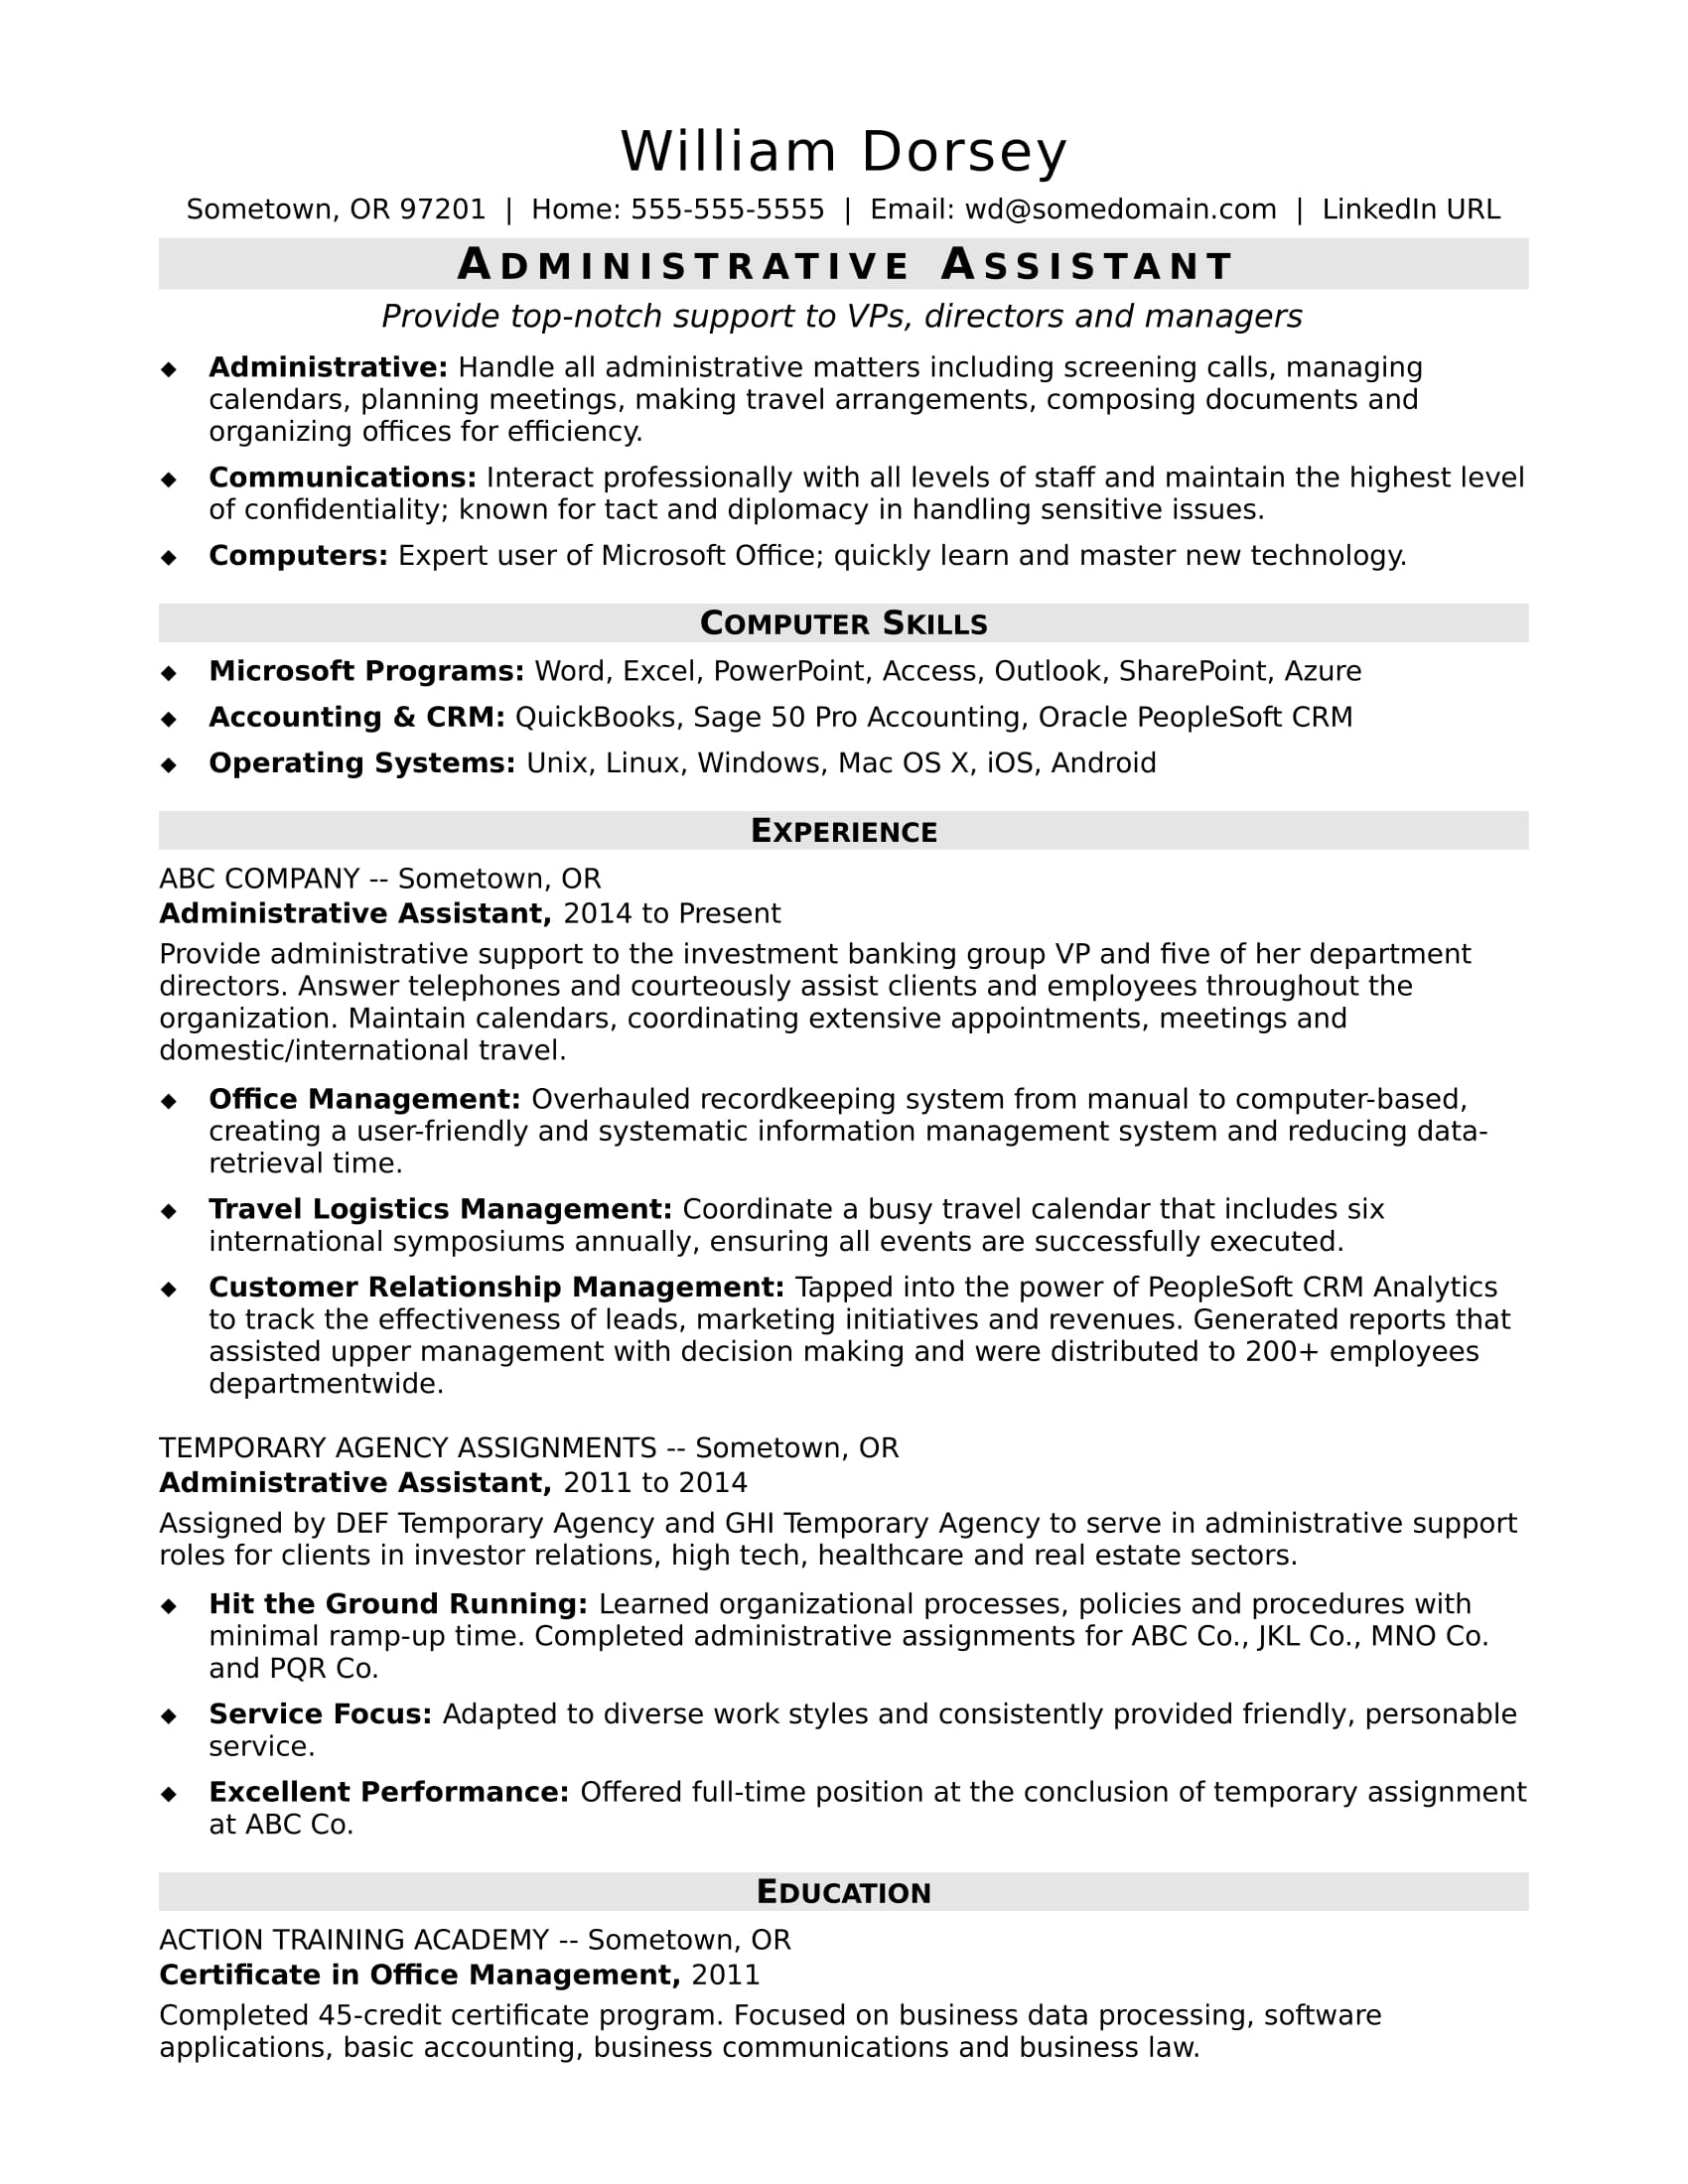 Midlevel Administrative Assistant Resume Sample Monster Com